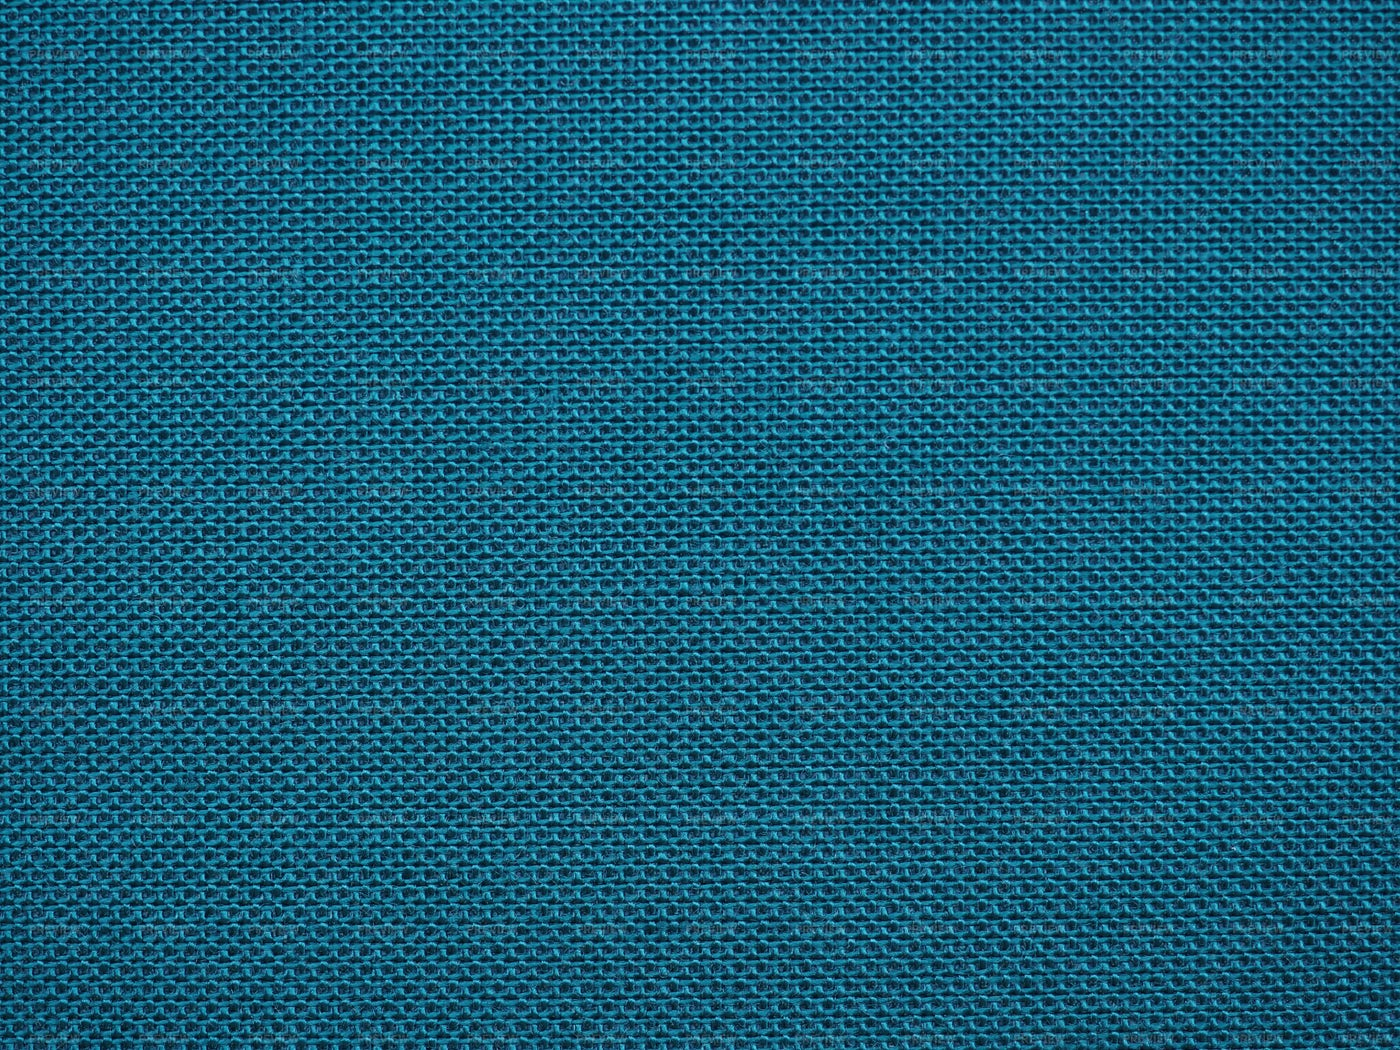 Dark Blue Fabric: Stock Photos